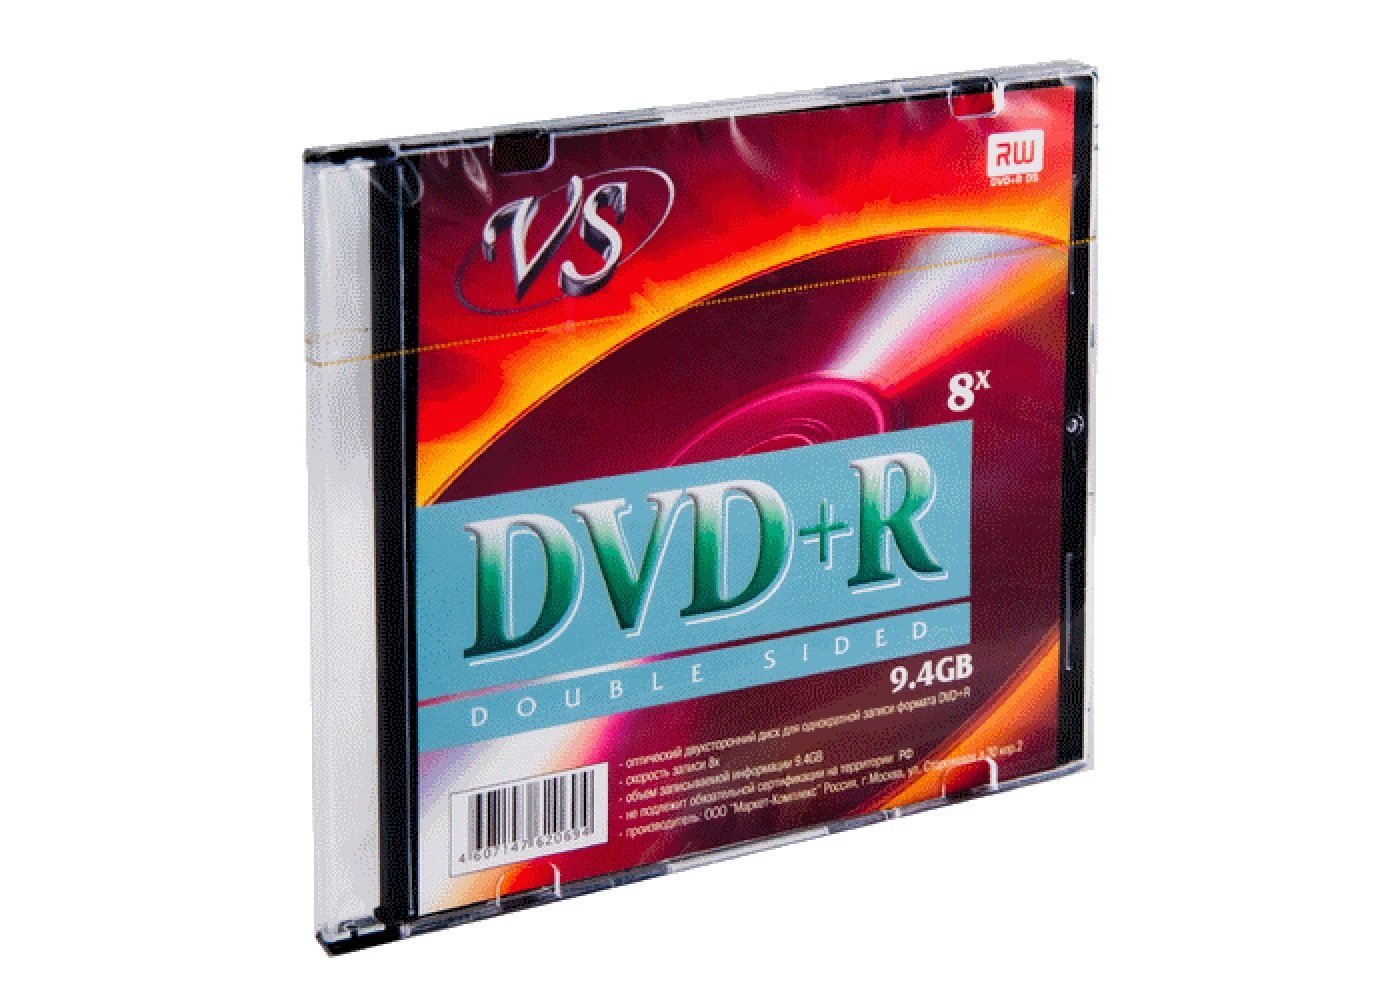 Диск записываемый DVD+R disk VS 16X 9.4Gb Double Sided Slim